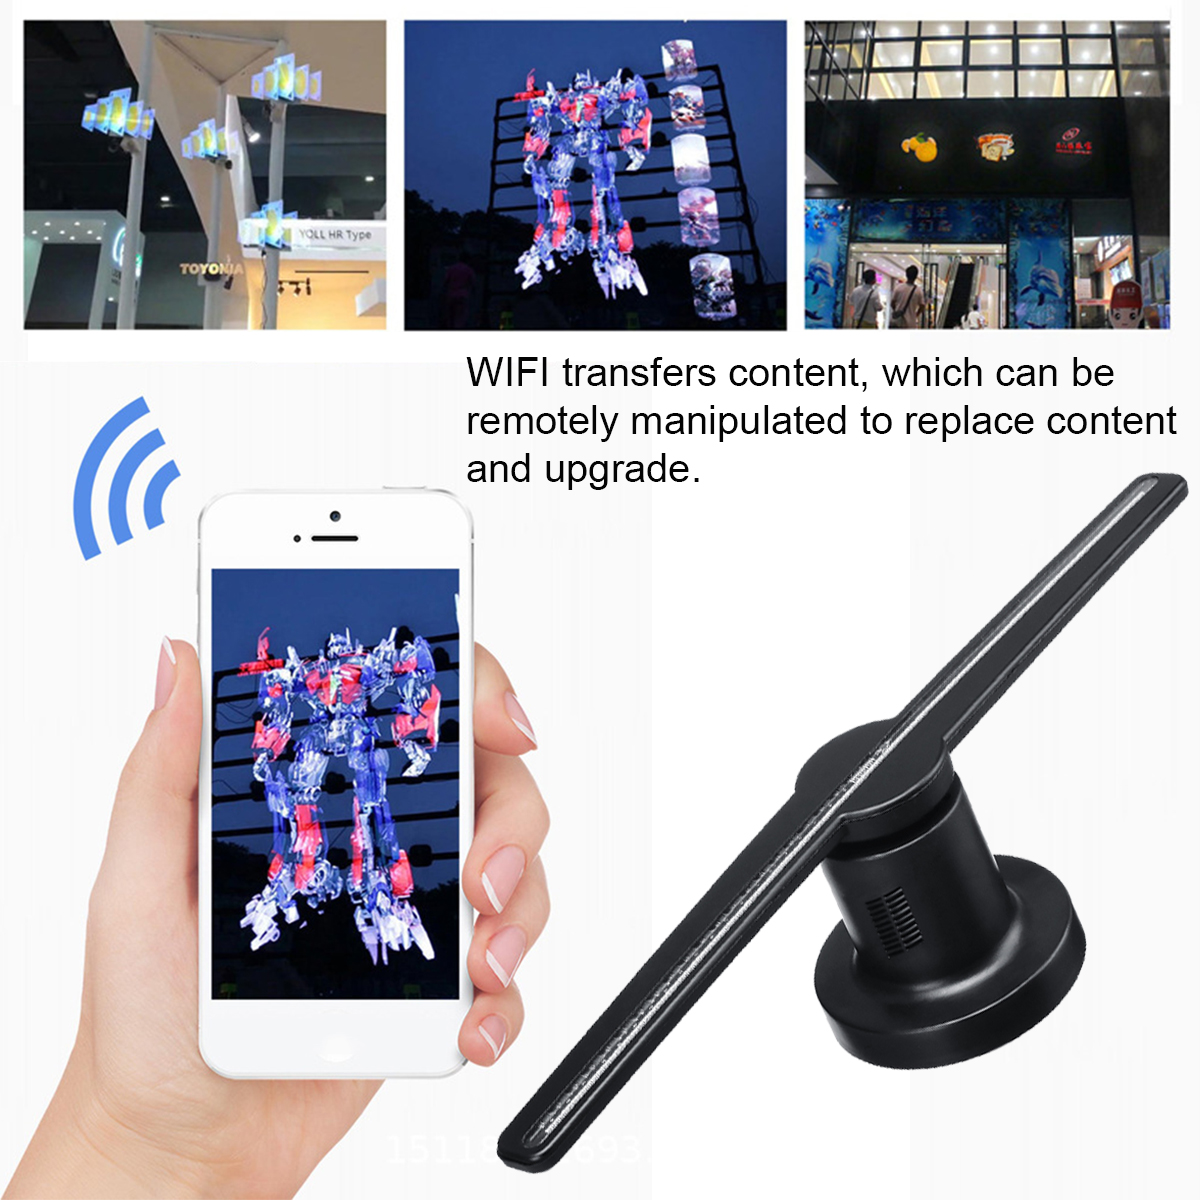 WIFI 3D Holographic Sight Projector Display Fan LED Hologram Player Lamp Advertising